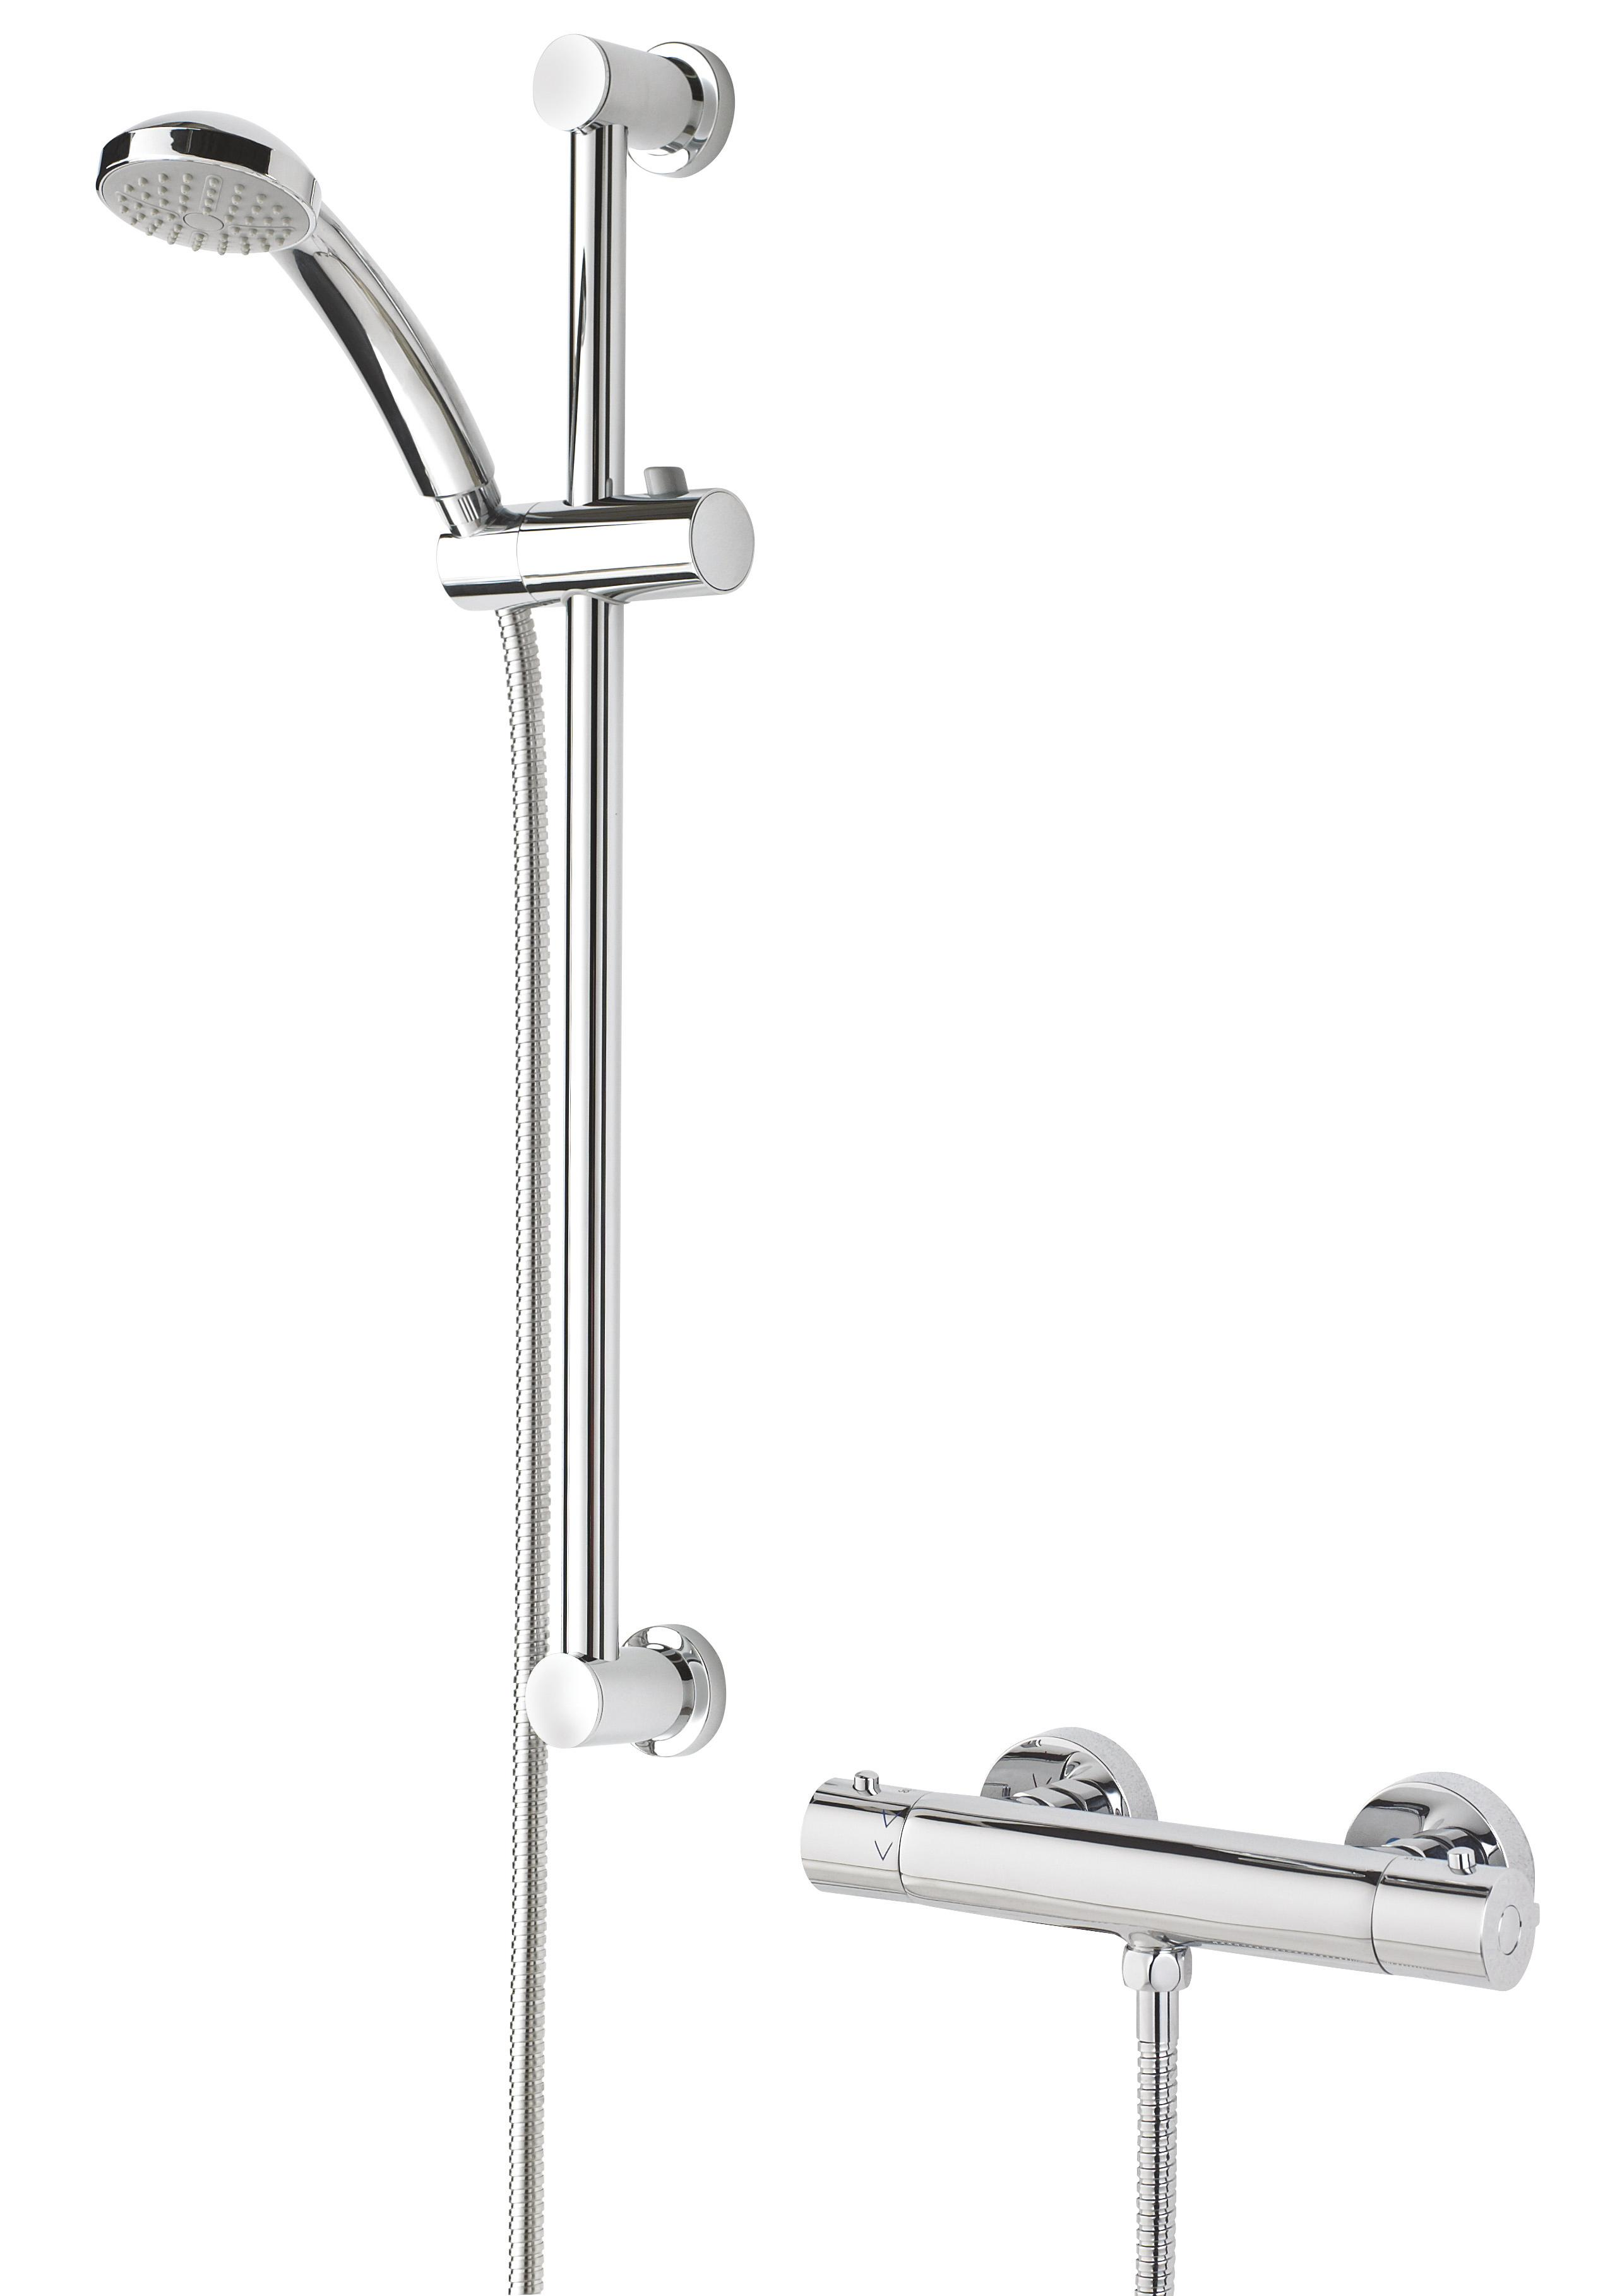 BRISTAN FRENZY THERMOSTATIC BAR SHOWER WITH RISER KIT - FZ SHXMMCTFF C